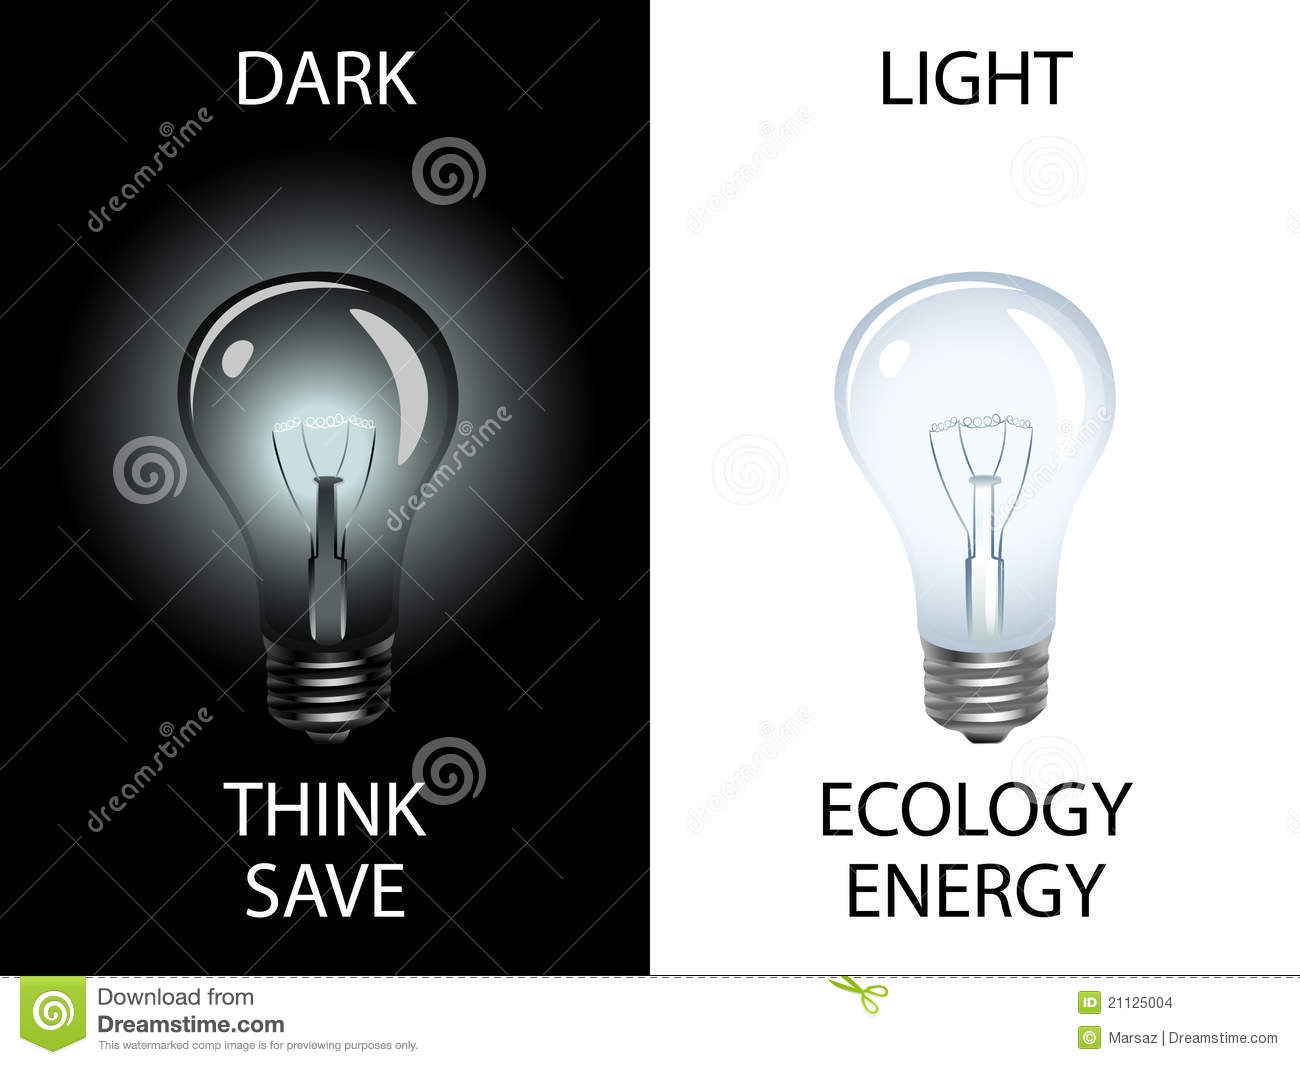 Save energy save environment clipart vector black and white library Save Energy And Preserve Environment Stock Images - Image: 21125004 vector black and white library